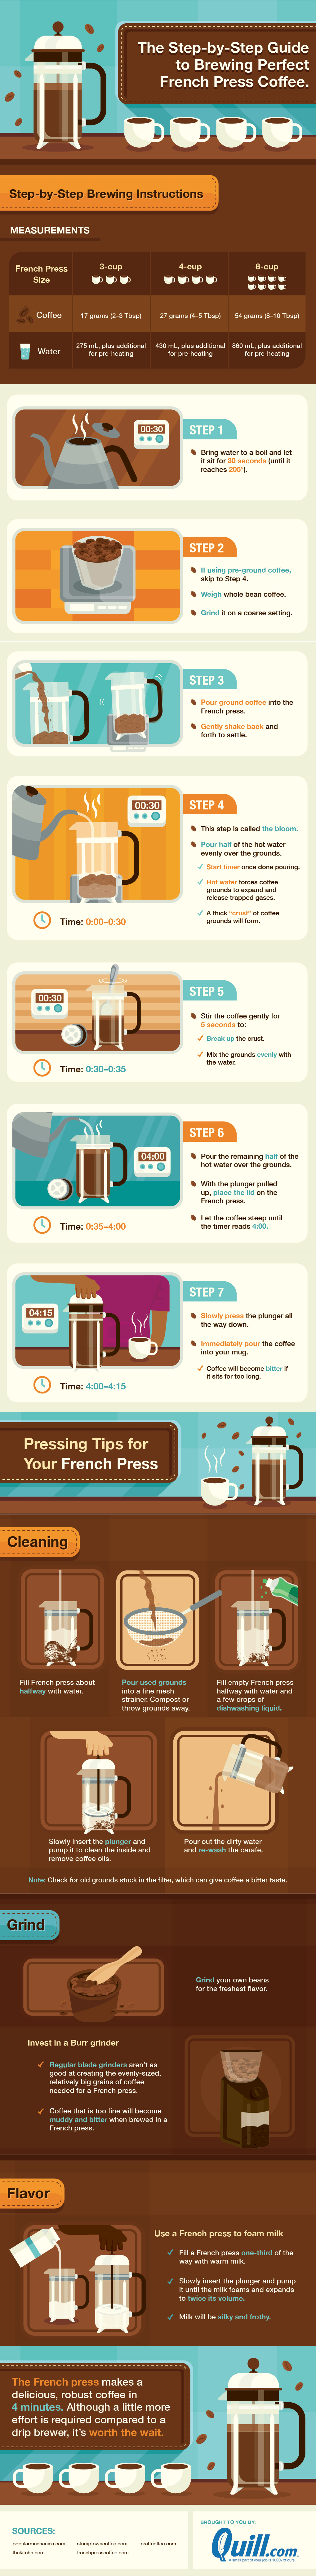 How To Make The French Press Coffee Perfectly - Infographic